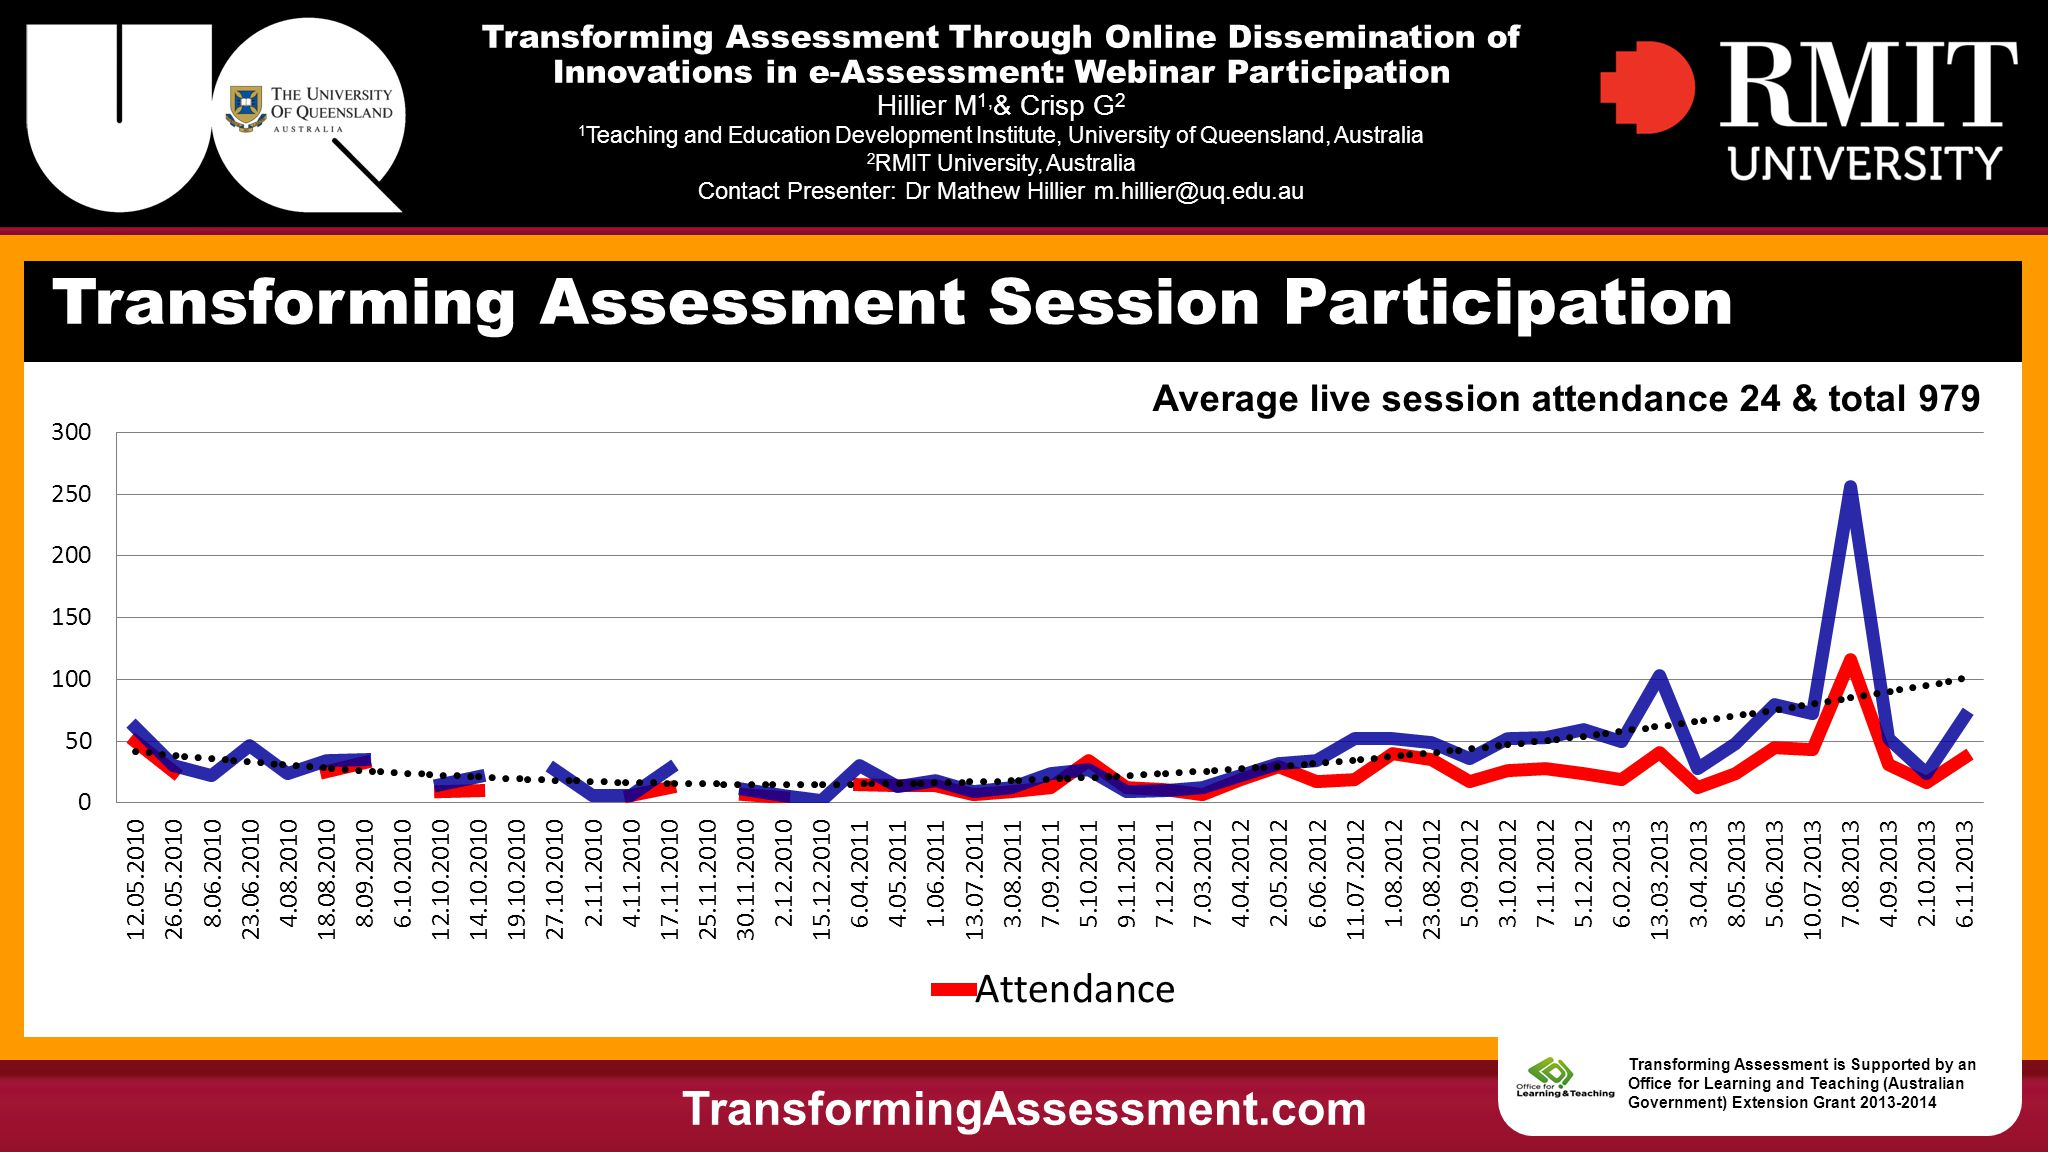 Transforming Assessment Through Online Dissemination of Innovations in e-Assessment: Webinar Participation Hillier M 1, & Crisp G 2 1 Teaching and Education Development Institute, University of Queensland, Australia 2 RMIT University, Australia Contact Presenter: Dr Mathew Hillier m.hillier@uq.edu.au Transforming Assessment Session Participation TransformingAssessment.com Transforming Assessment is Supported by an Office for Learning and Teaching (Australian Government) Extension Grant 2013-2014 Average live session attendance 24 & total 979